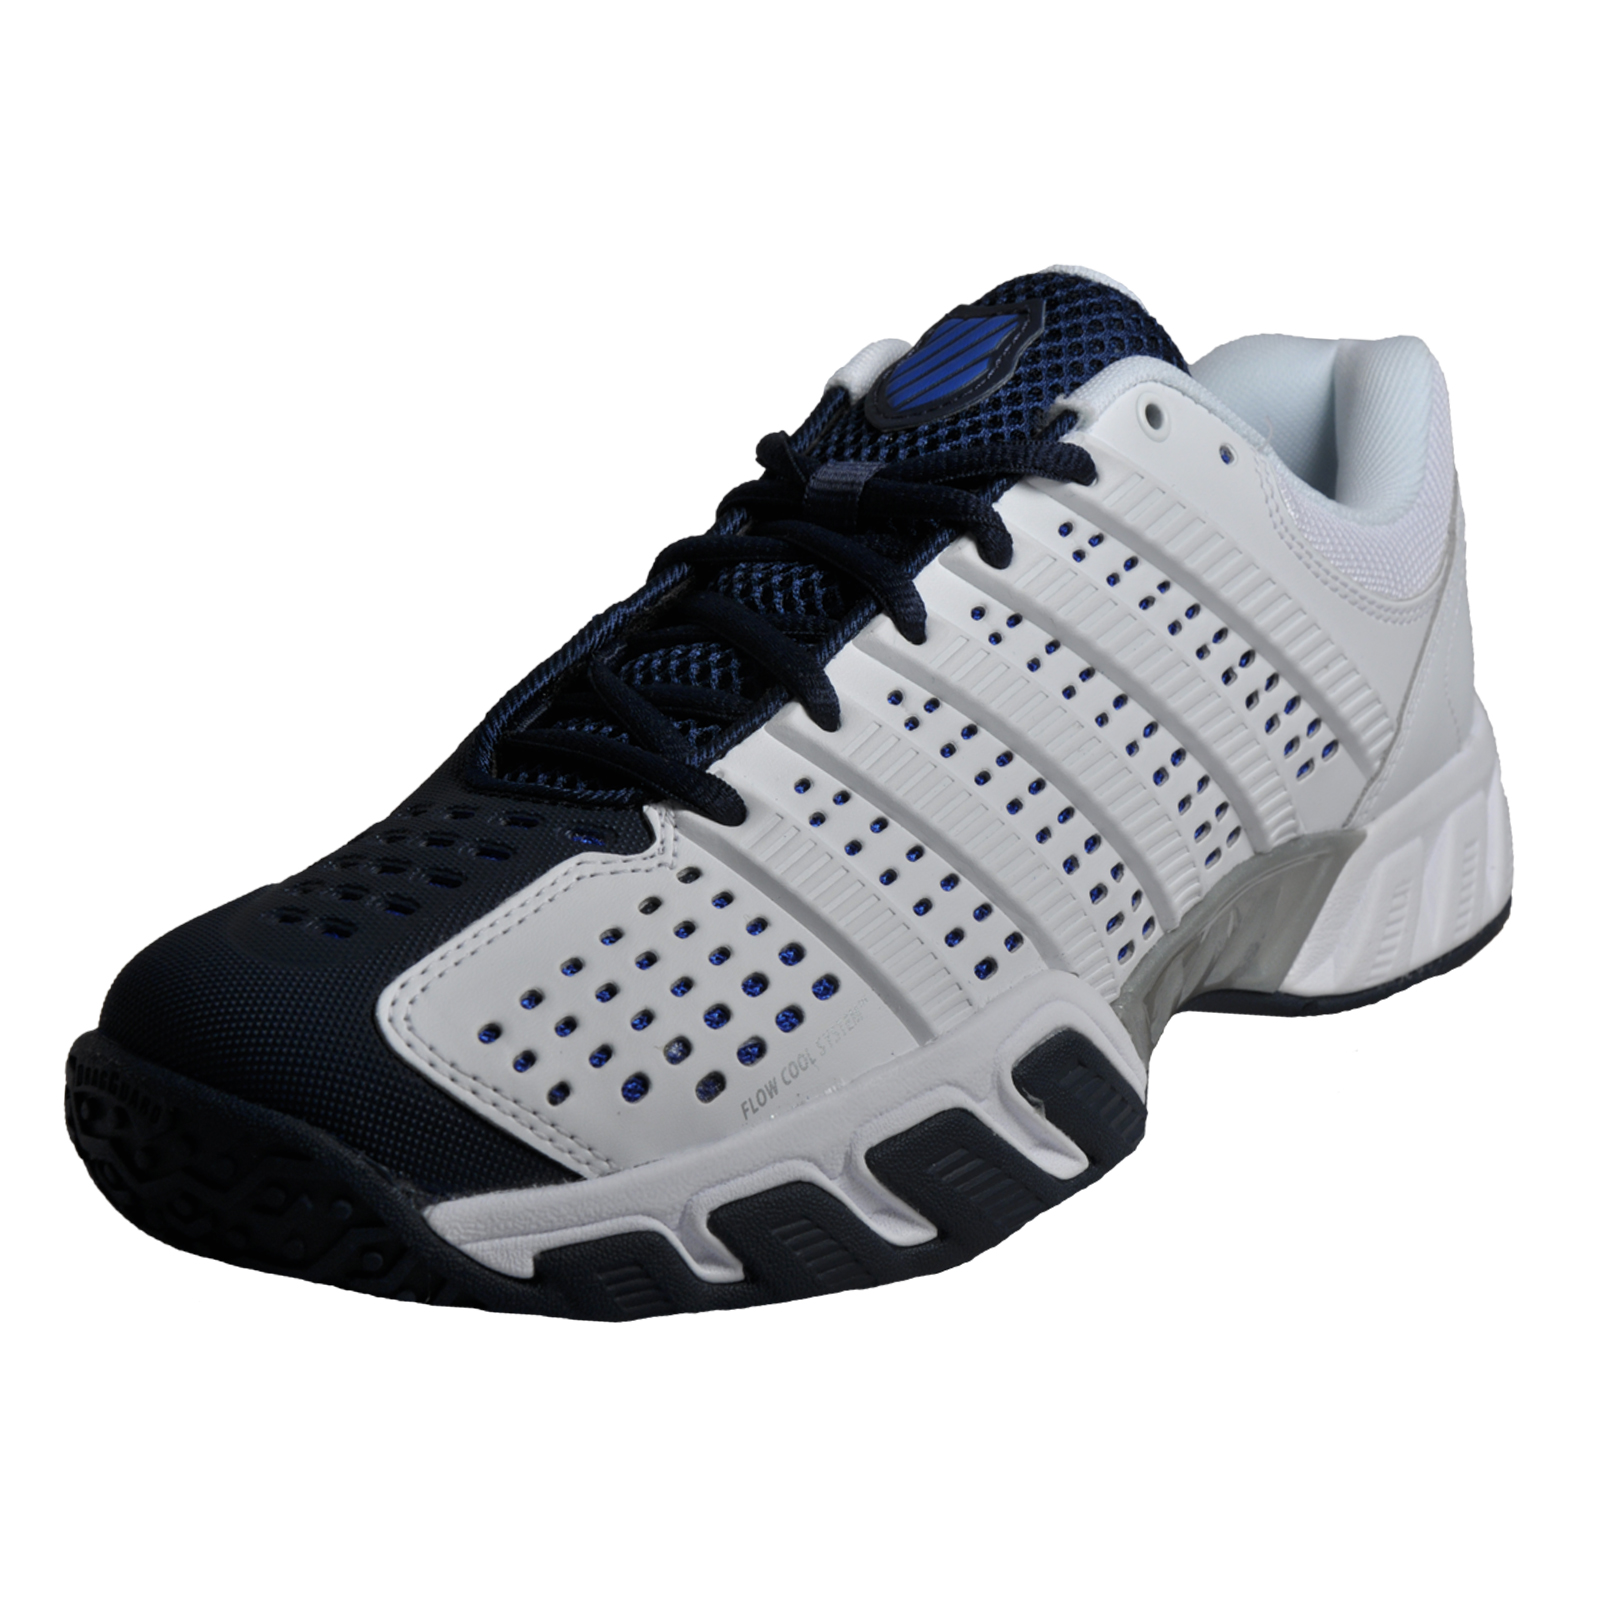 K Swiss Tennis Shoes Clearance